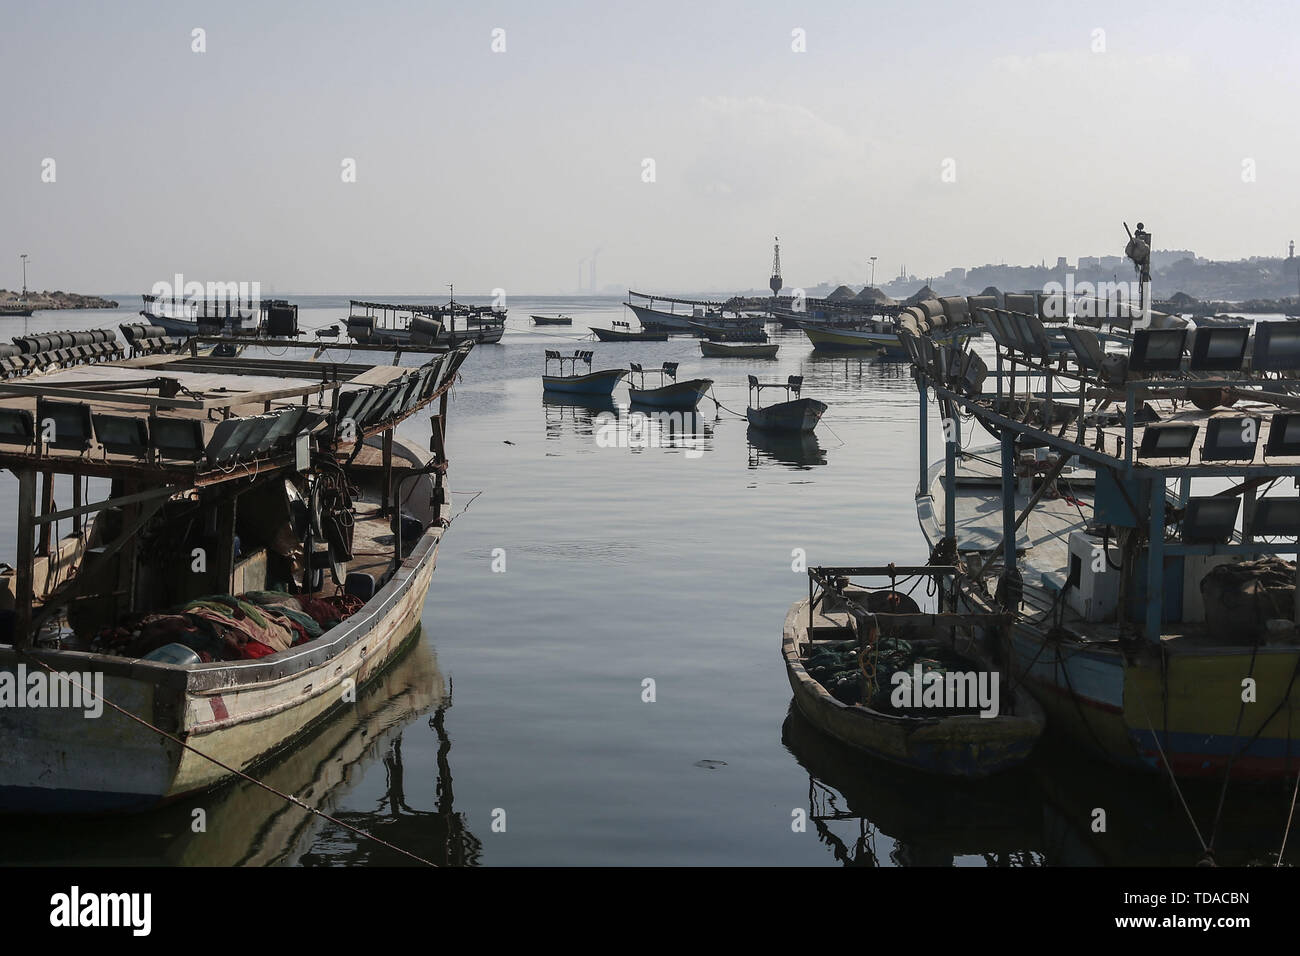 Gaza City, Palestinian Territories. 14th June, 2019. Palestinian fishing boats anchored in Gaza port and fish shops empty. According to media reports, Israel closed the fishing area of Gaza fishermen until further notice in response to the so-called four burning balloons that emerged from the coastal enclave creating small fires In southern Israel. Credit: Mohammed Talatene/dpa/Alamy Live News - Stock Image